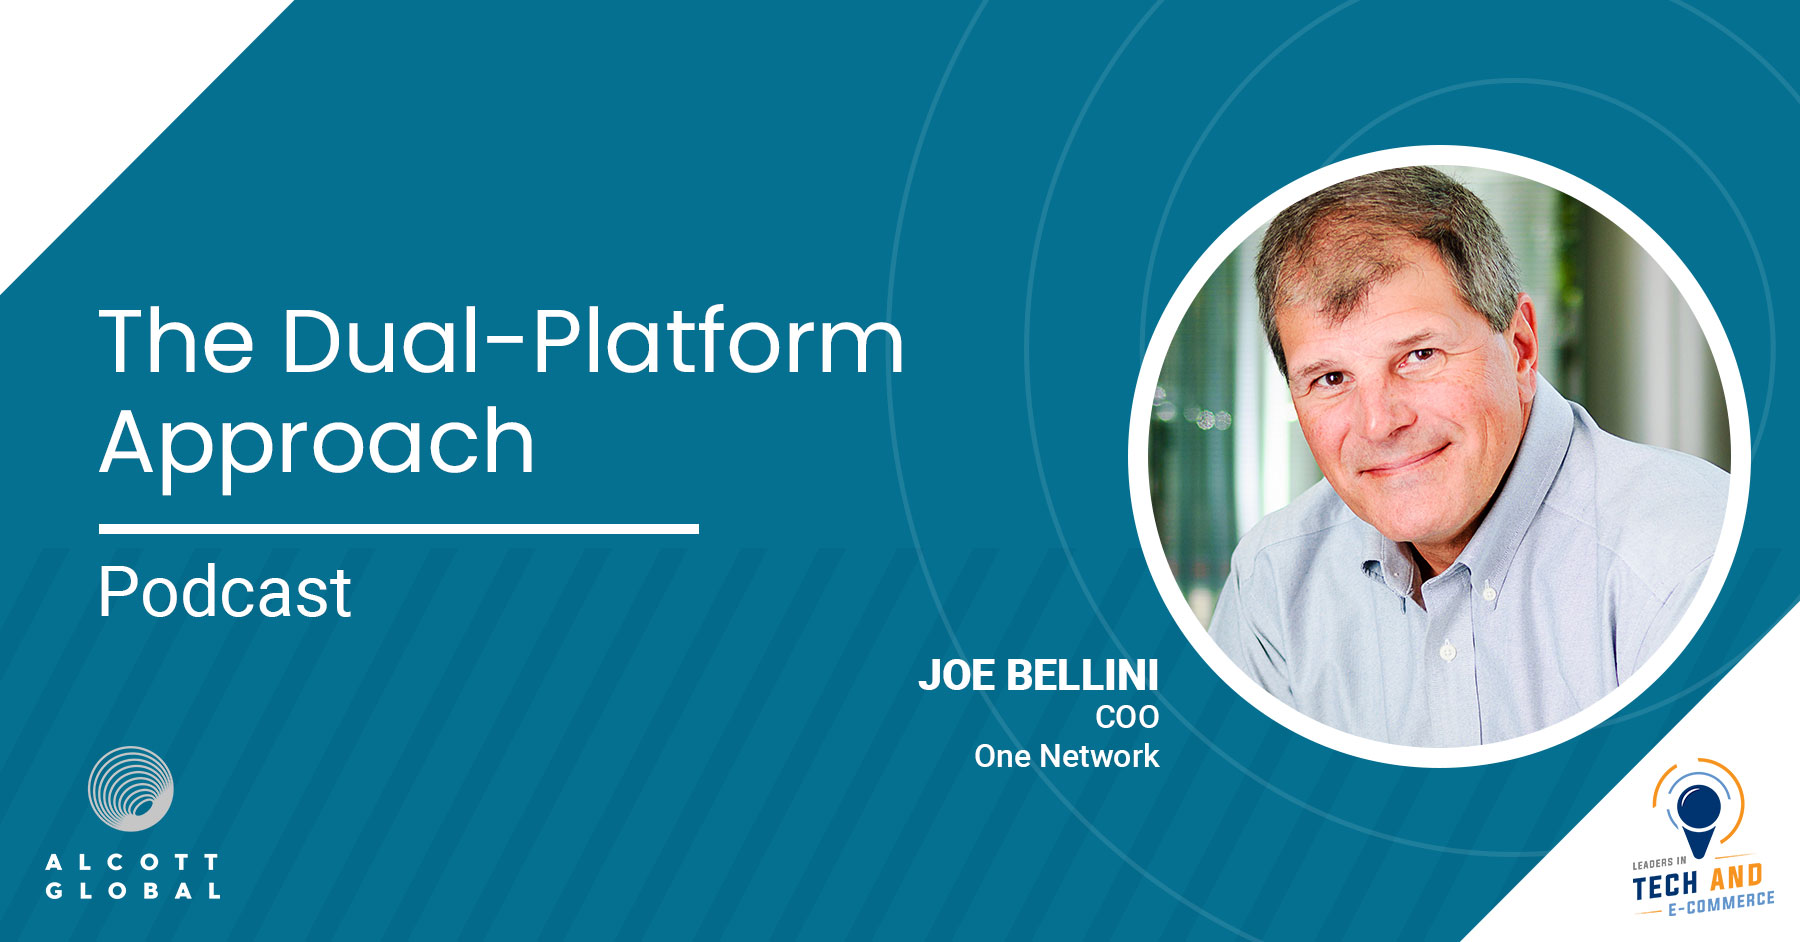 The Dual-Platform Approach with Joe Bellini COO of One Network Featured Image